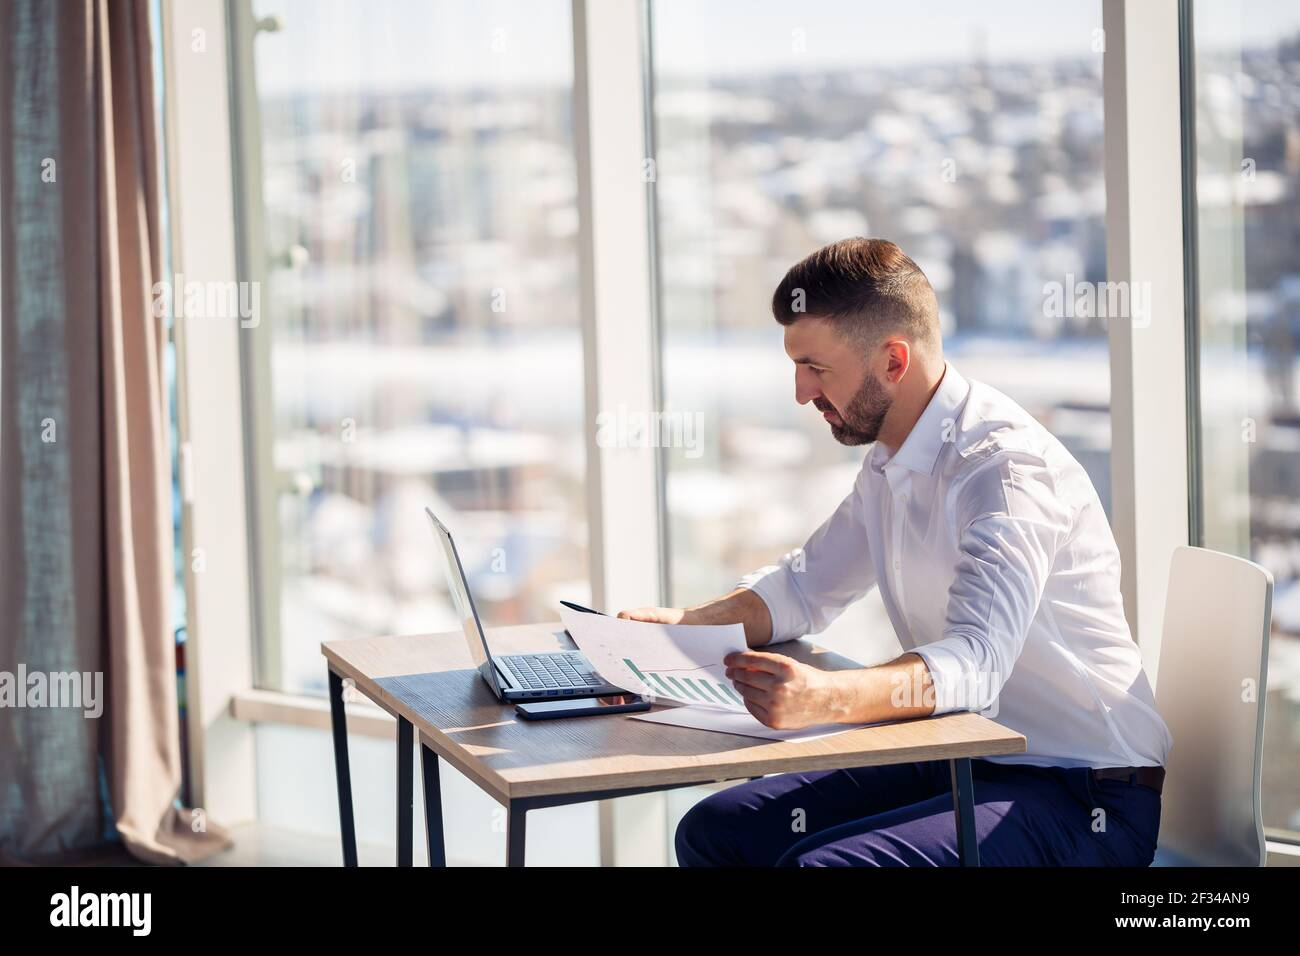 An adult successful male businessman sits in his office with large windows and works at a laptop, working on new projects. Stock Photo